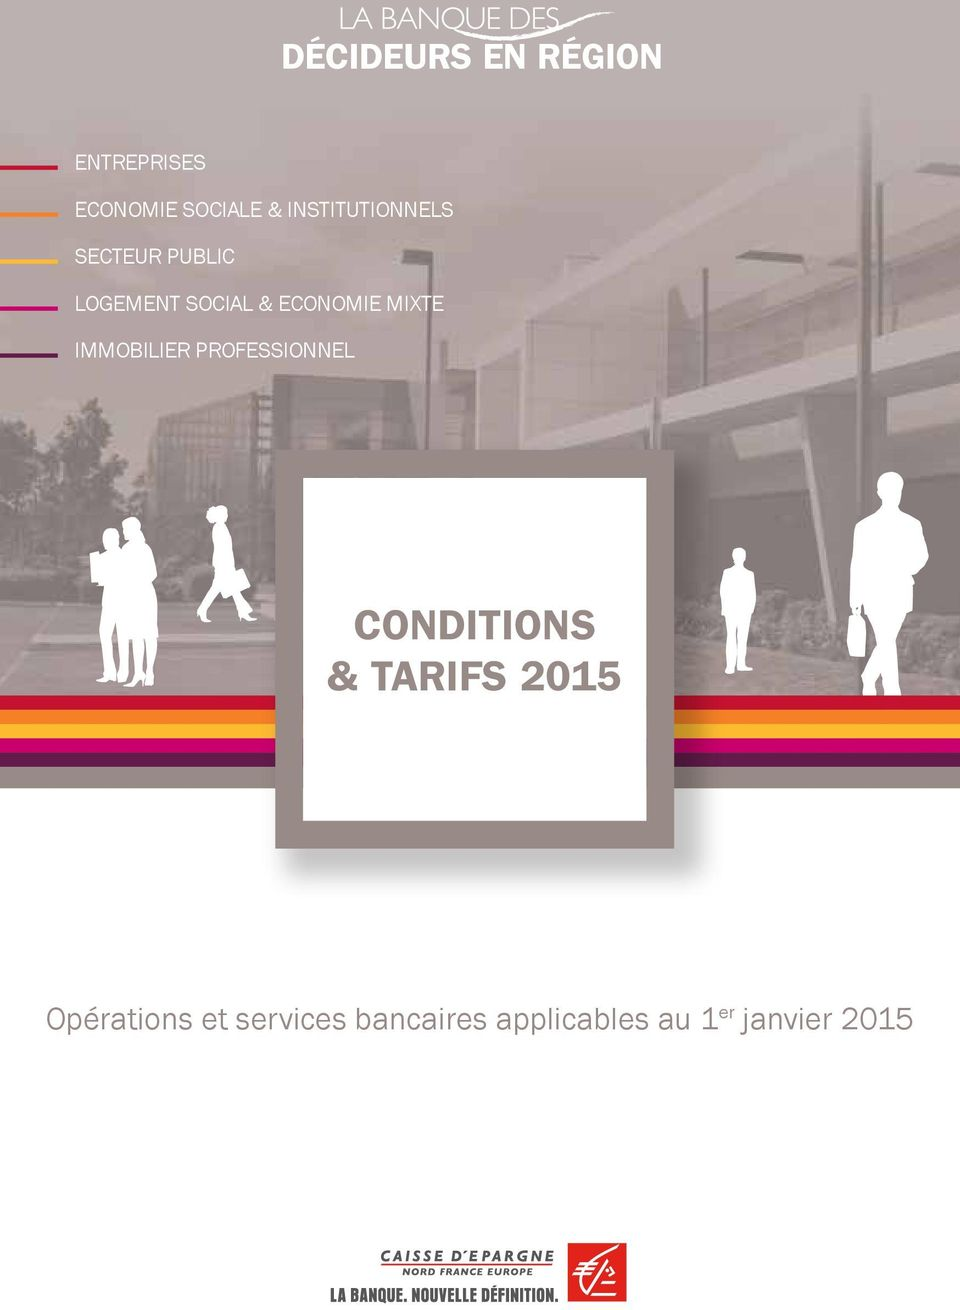 mixte immobilier professionnel Conditions & tarifs 2015